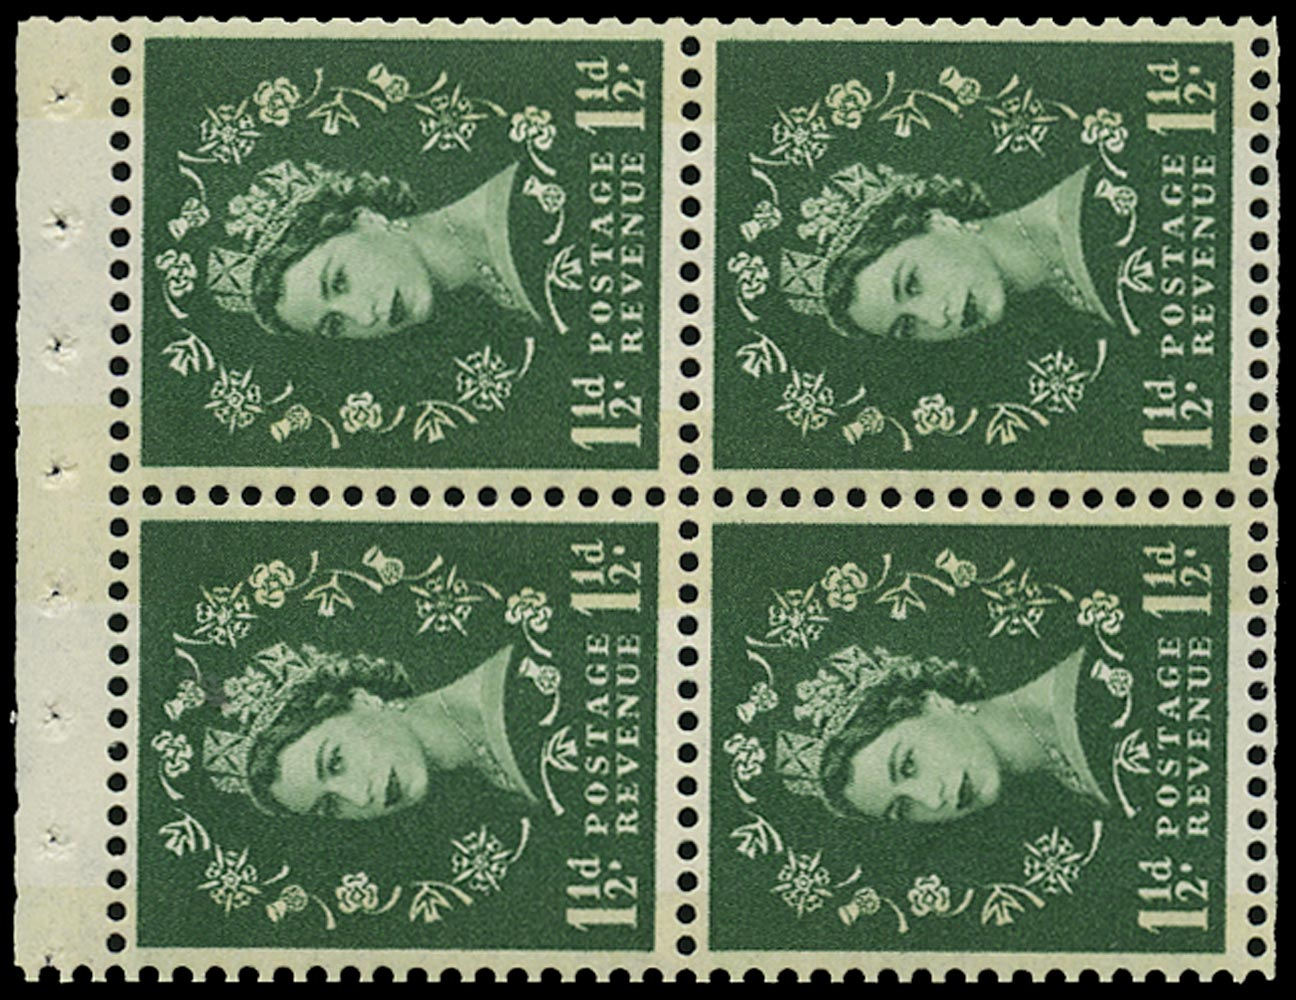 GB 1961  SG612mb Booklet pane - Wmk. Crowns to right